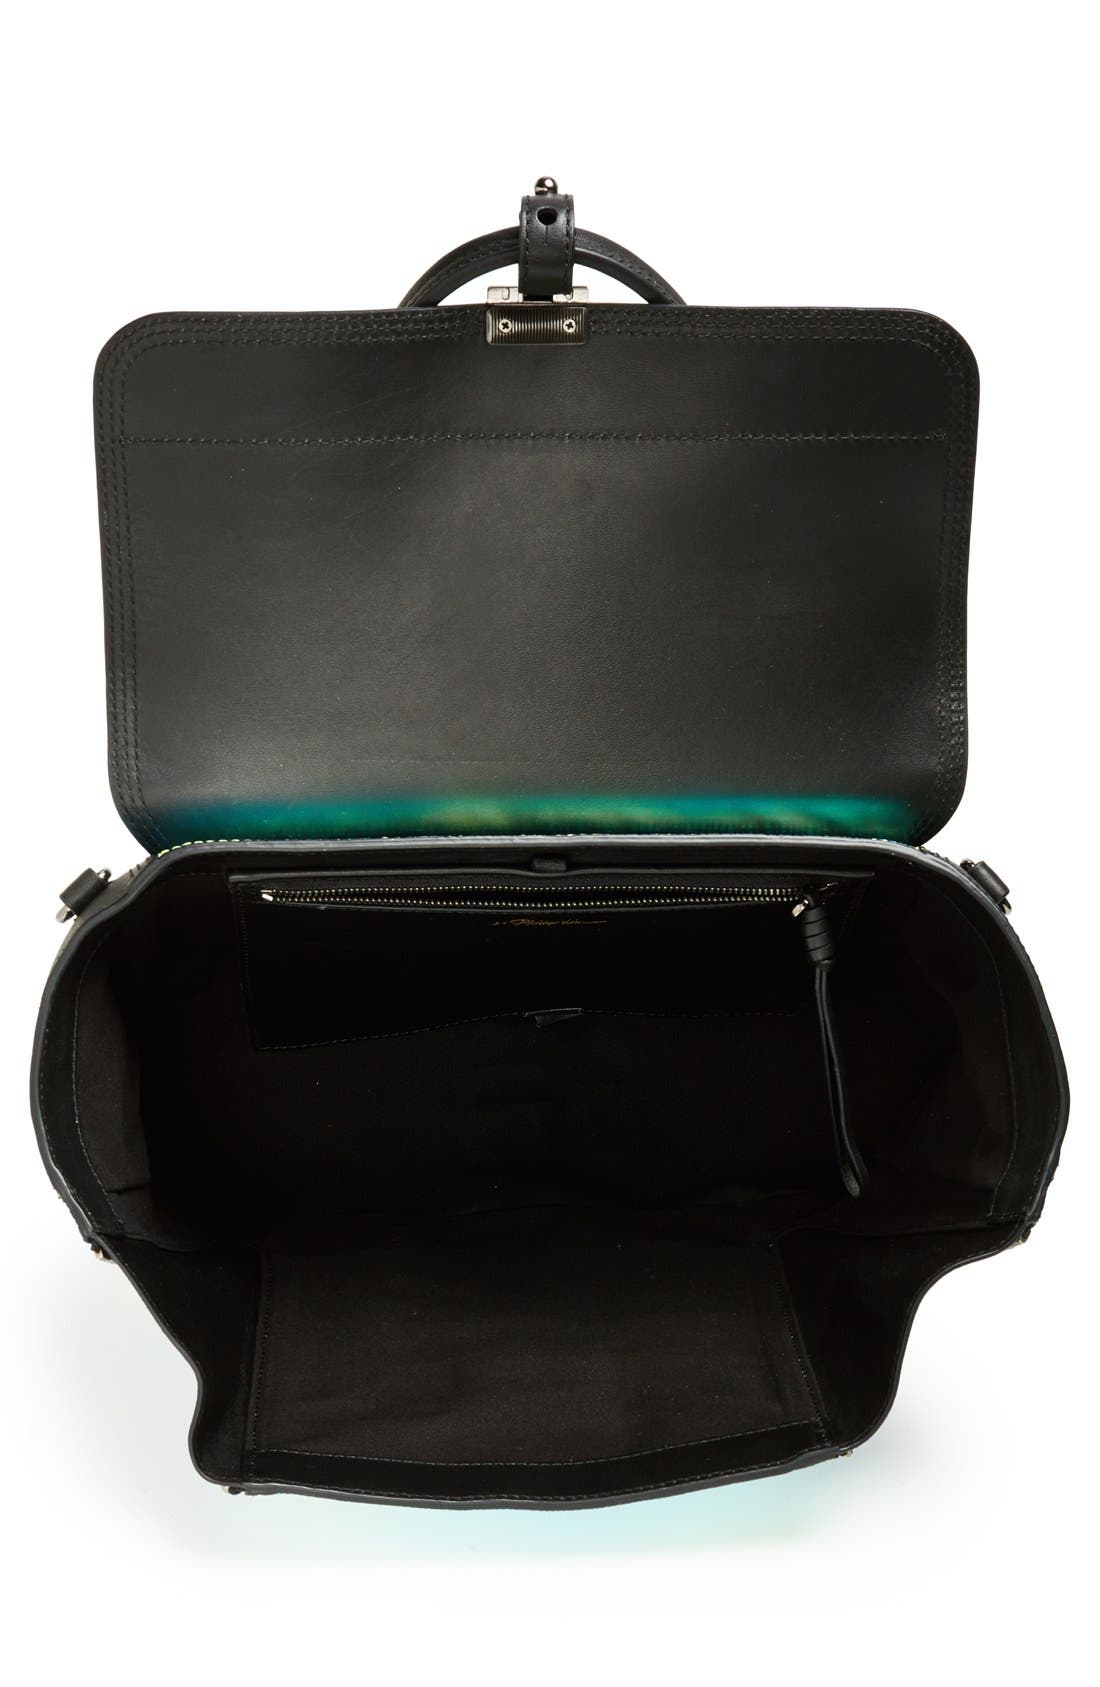 Alternate Image 3  - 3.1 Phillip Lim 'Medium Pashli' Iridescent Satchel